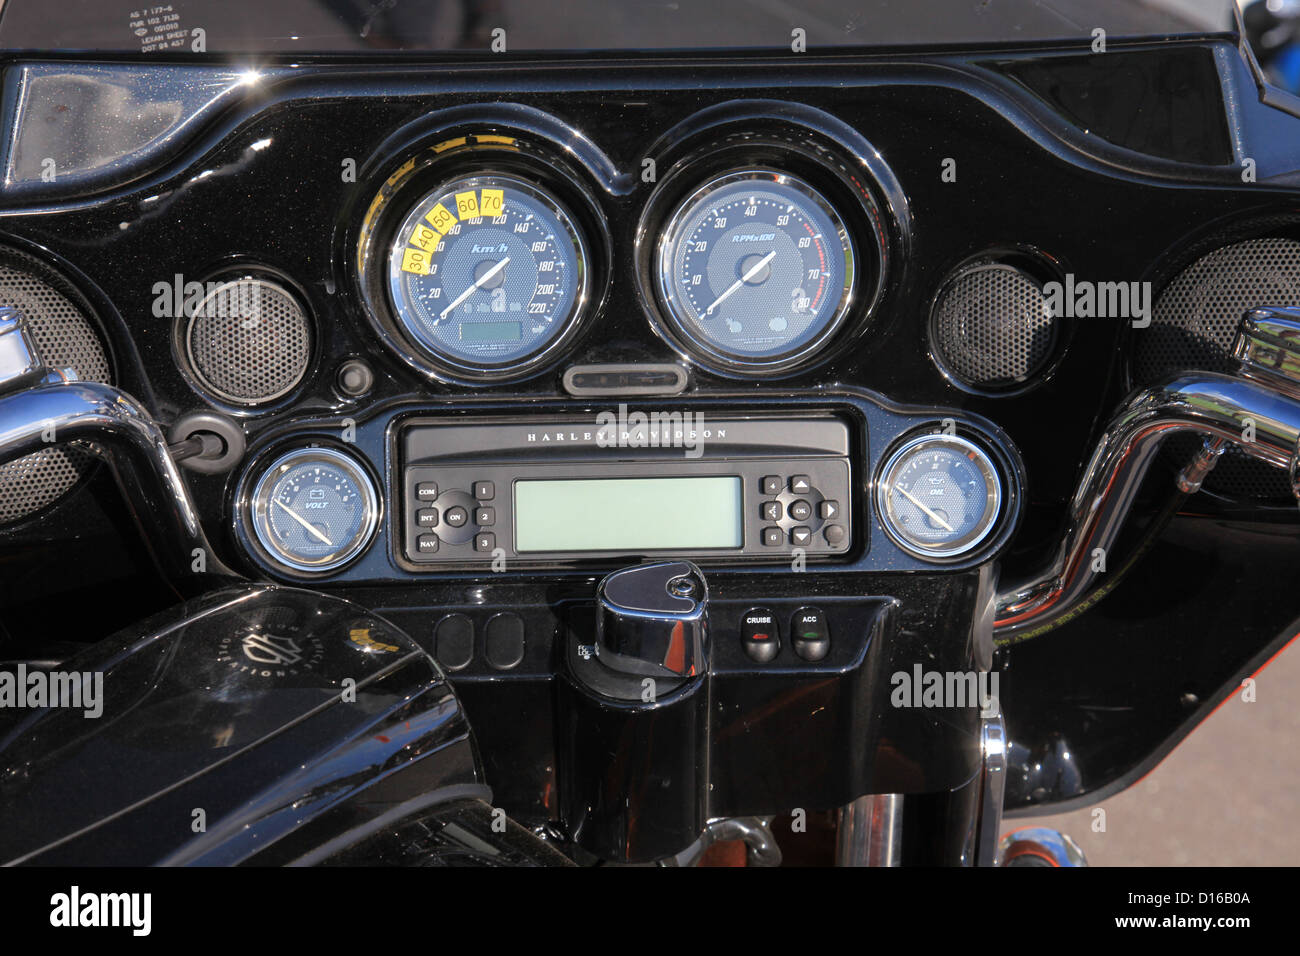 close up of dials on a harley davidson motor cycle - Stock Image